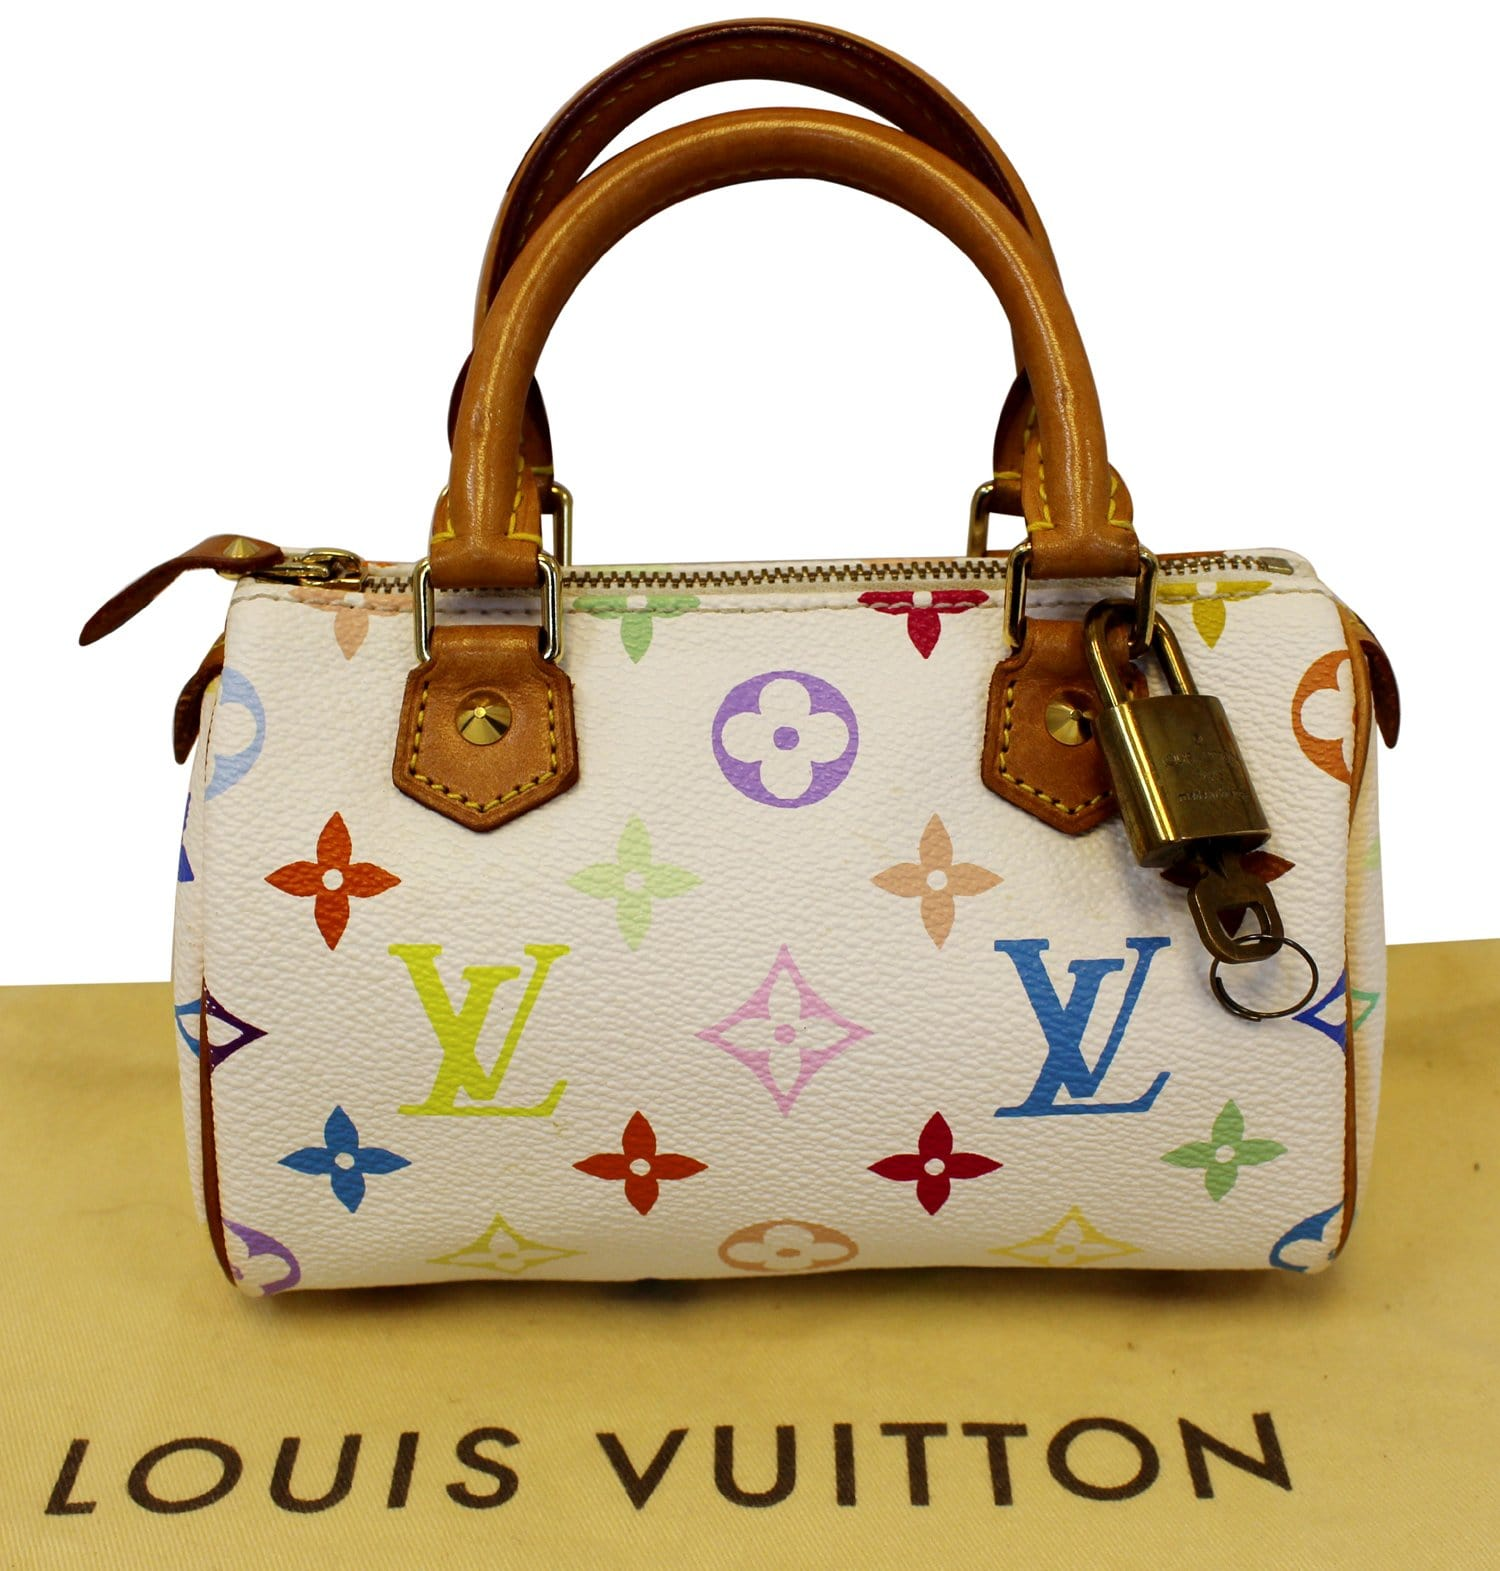 54e06d99ed8 LOUIS VUITTON Monogram Multicolor Mini Speedy White Satchel Bag